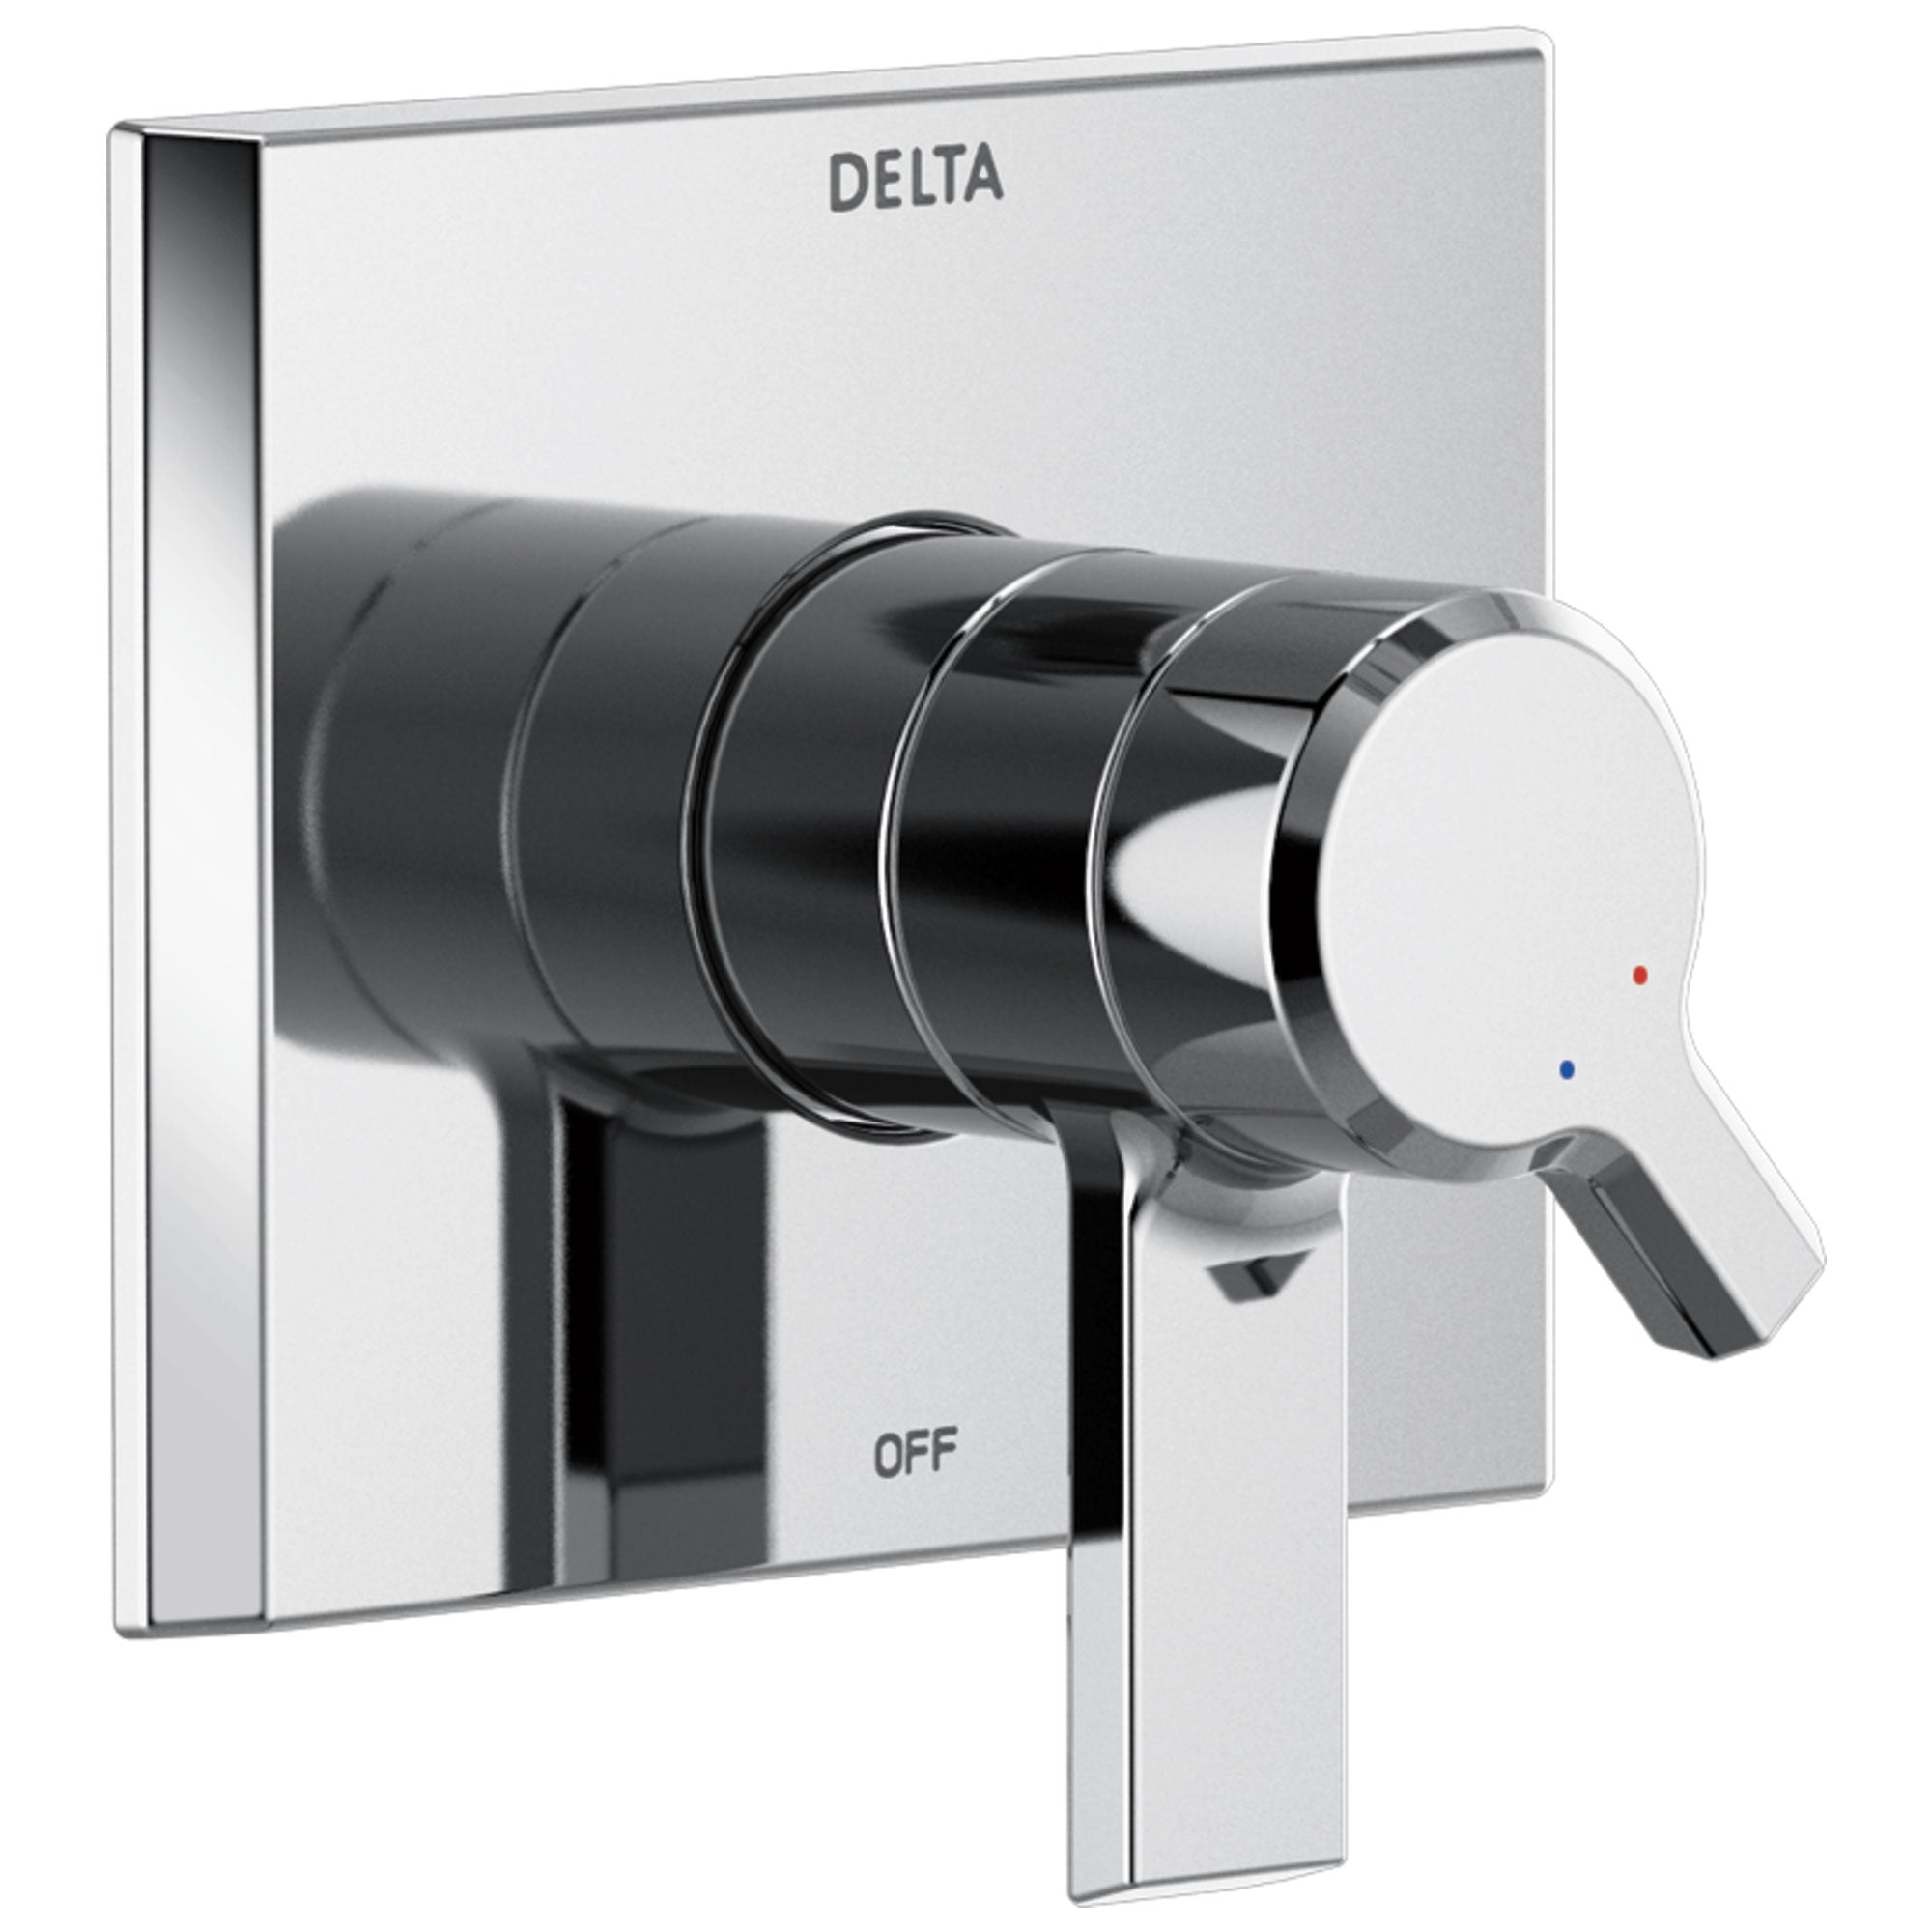 Delta Pivotal Chrome Finish Monitor 17 Series Shower Faucet Control Only Trim Kit (Requires Valve) DT17099